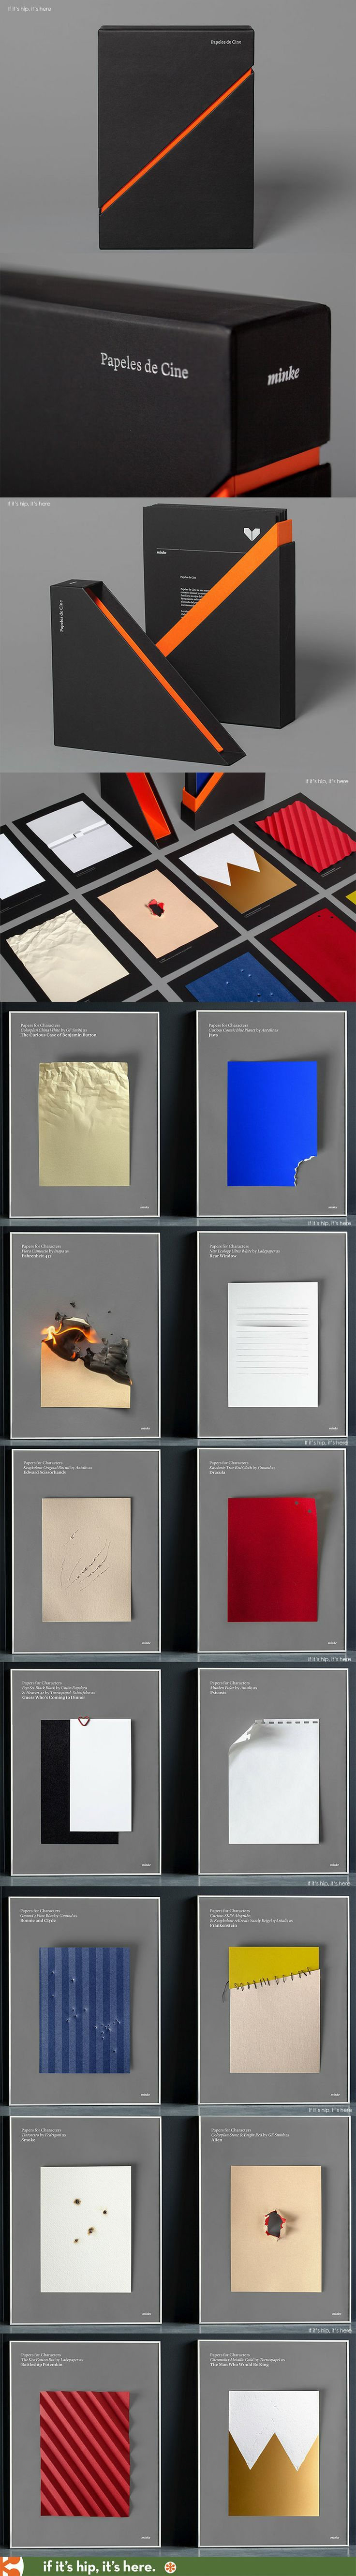 Beautifully boxed series of classic movies as paper art to promote Minke Papers.: